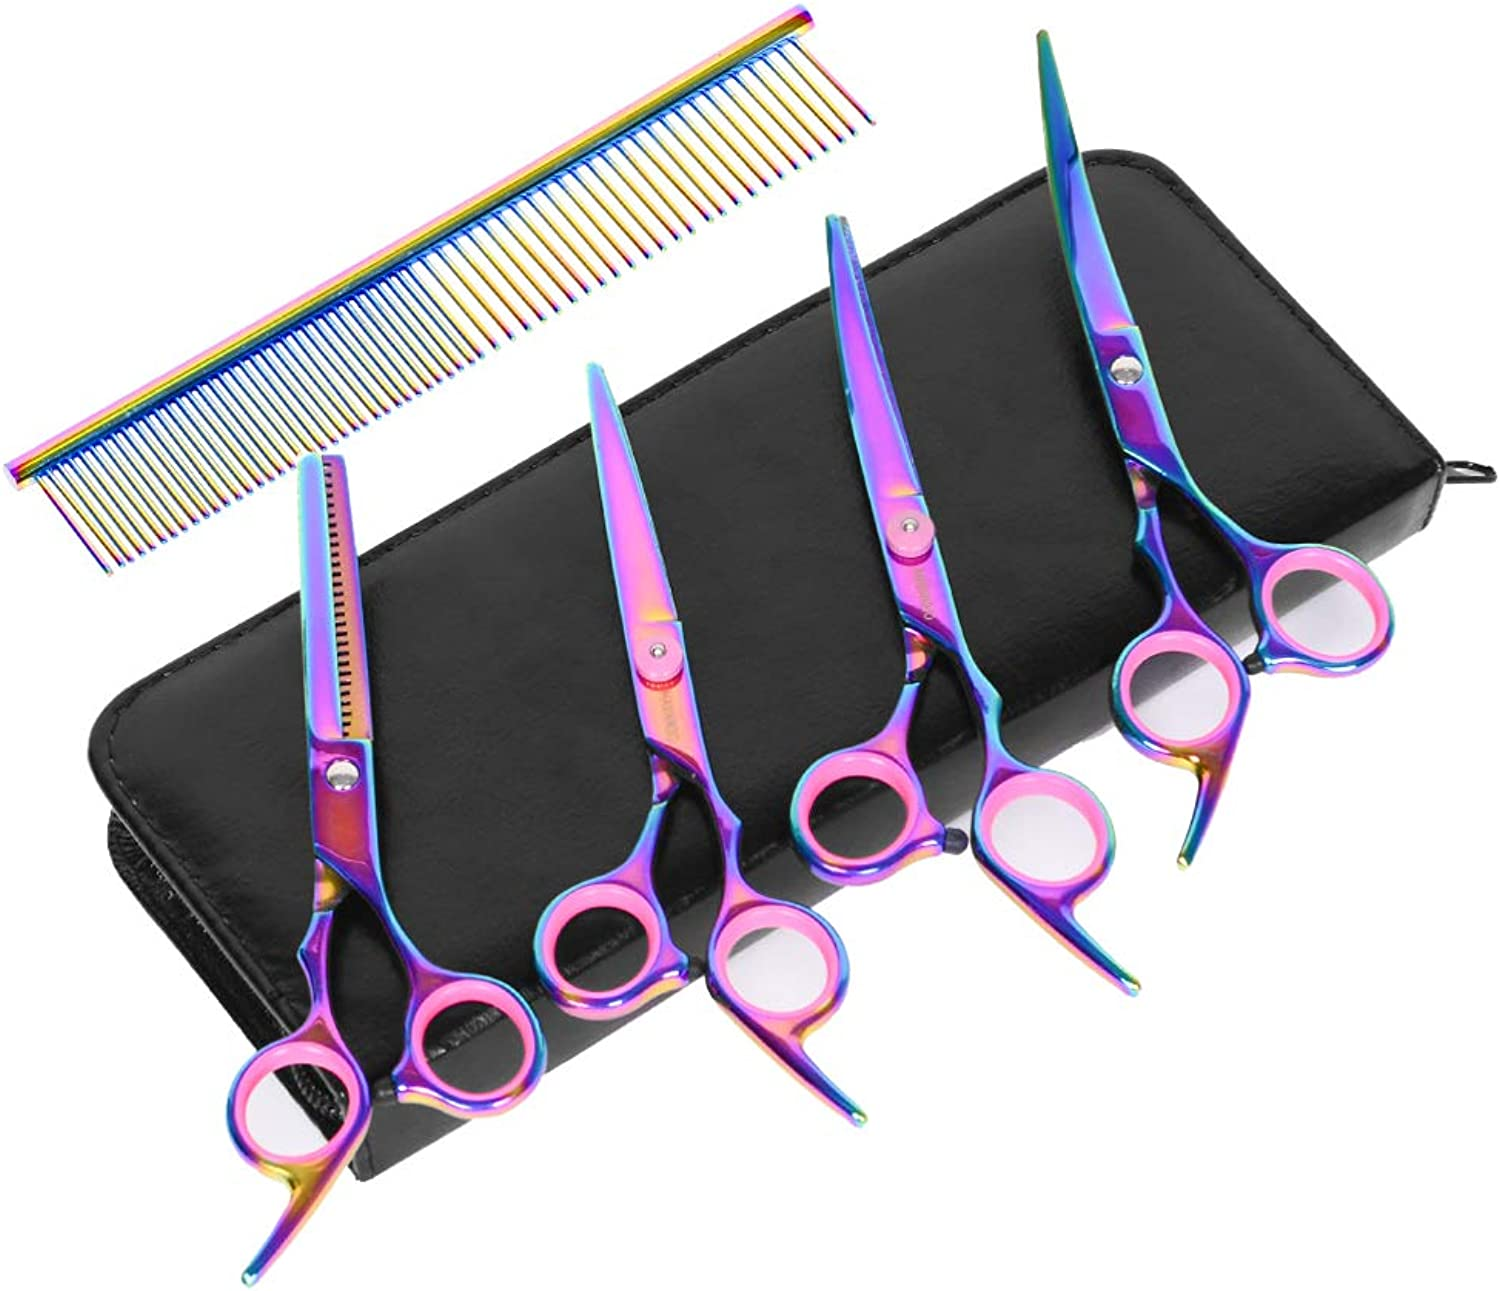 HAVARGO Grooming Scissors KitsPet Groom Hair Tool Set Stainless Steel Home Curved&Cutting&Thinning Shears